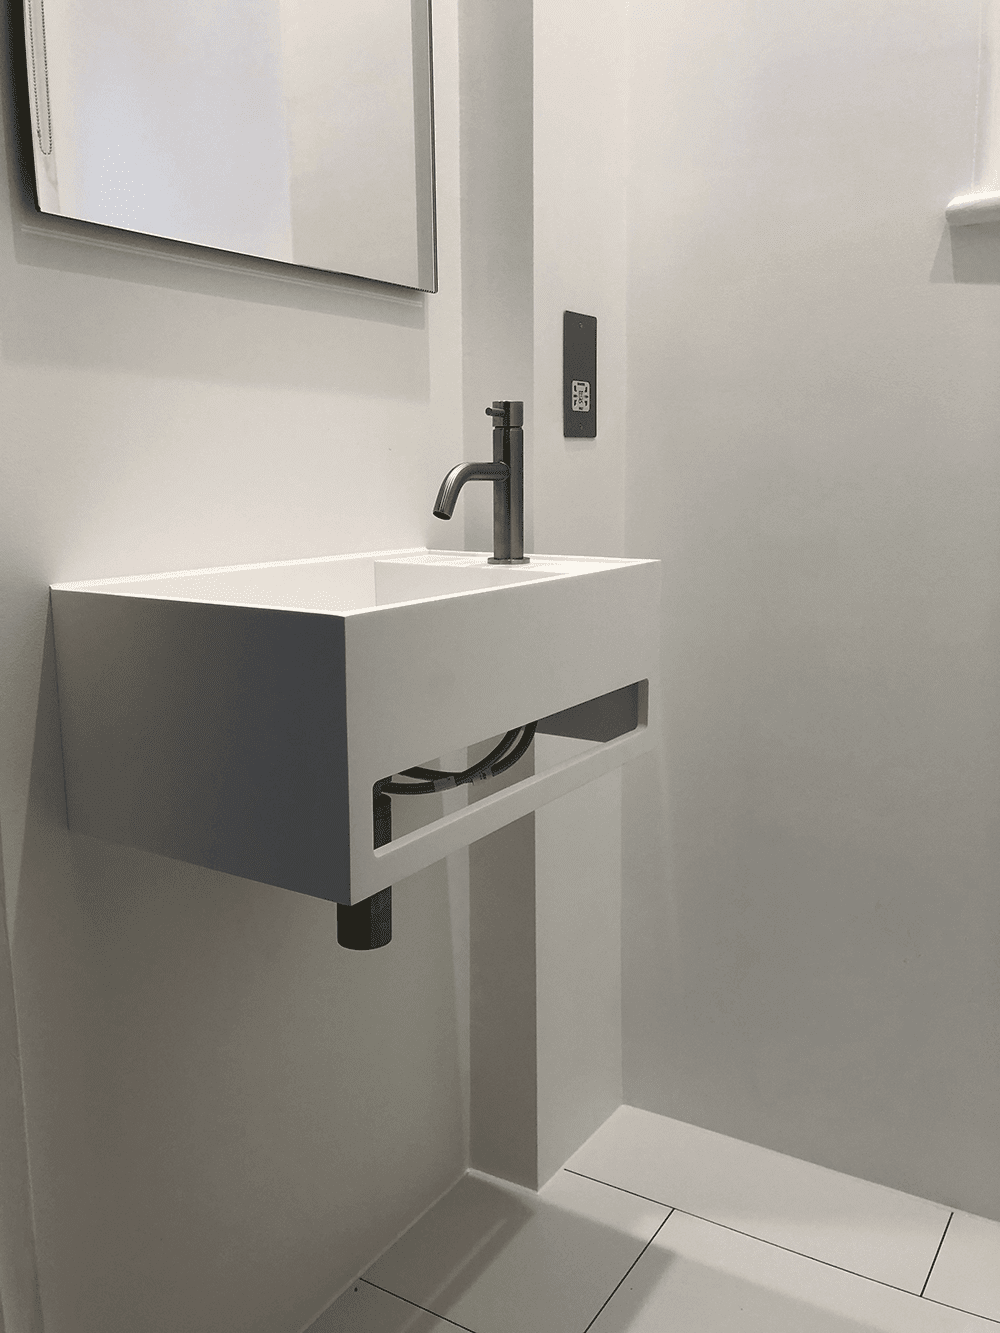 Sink Installation in Cloakroom